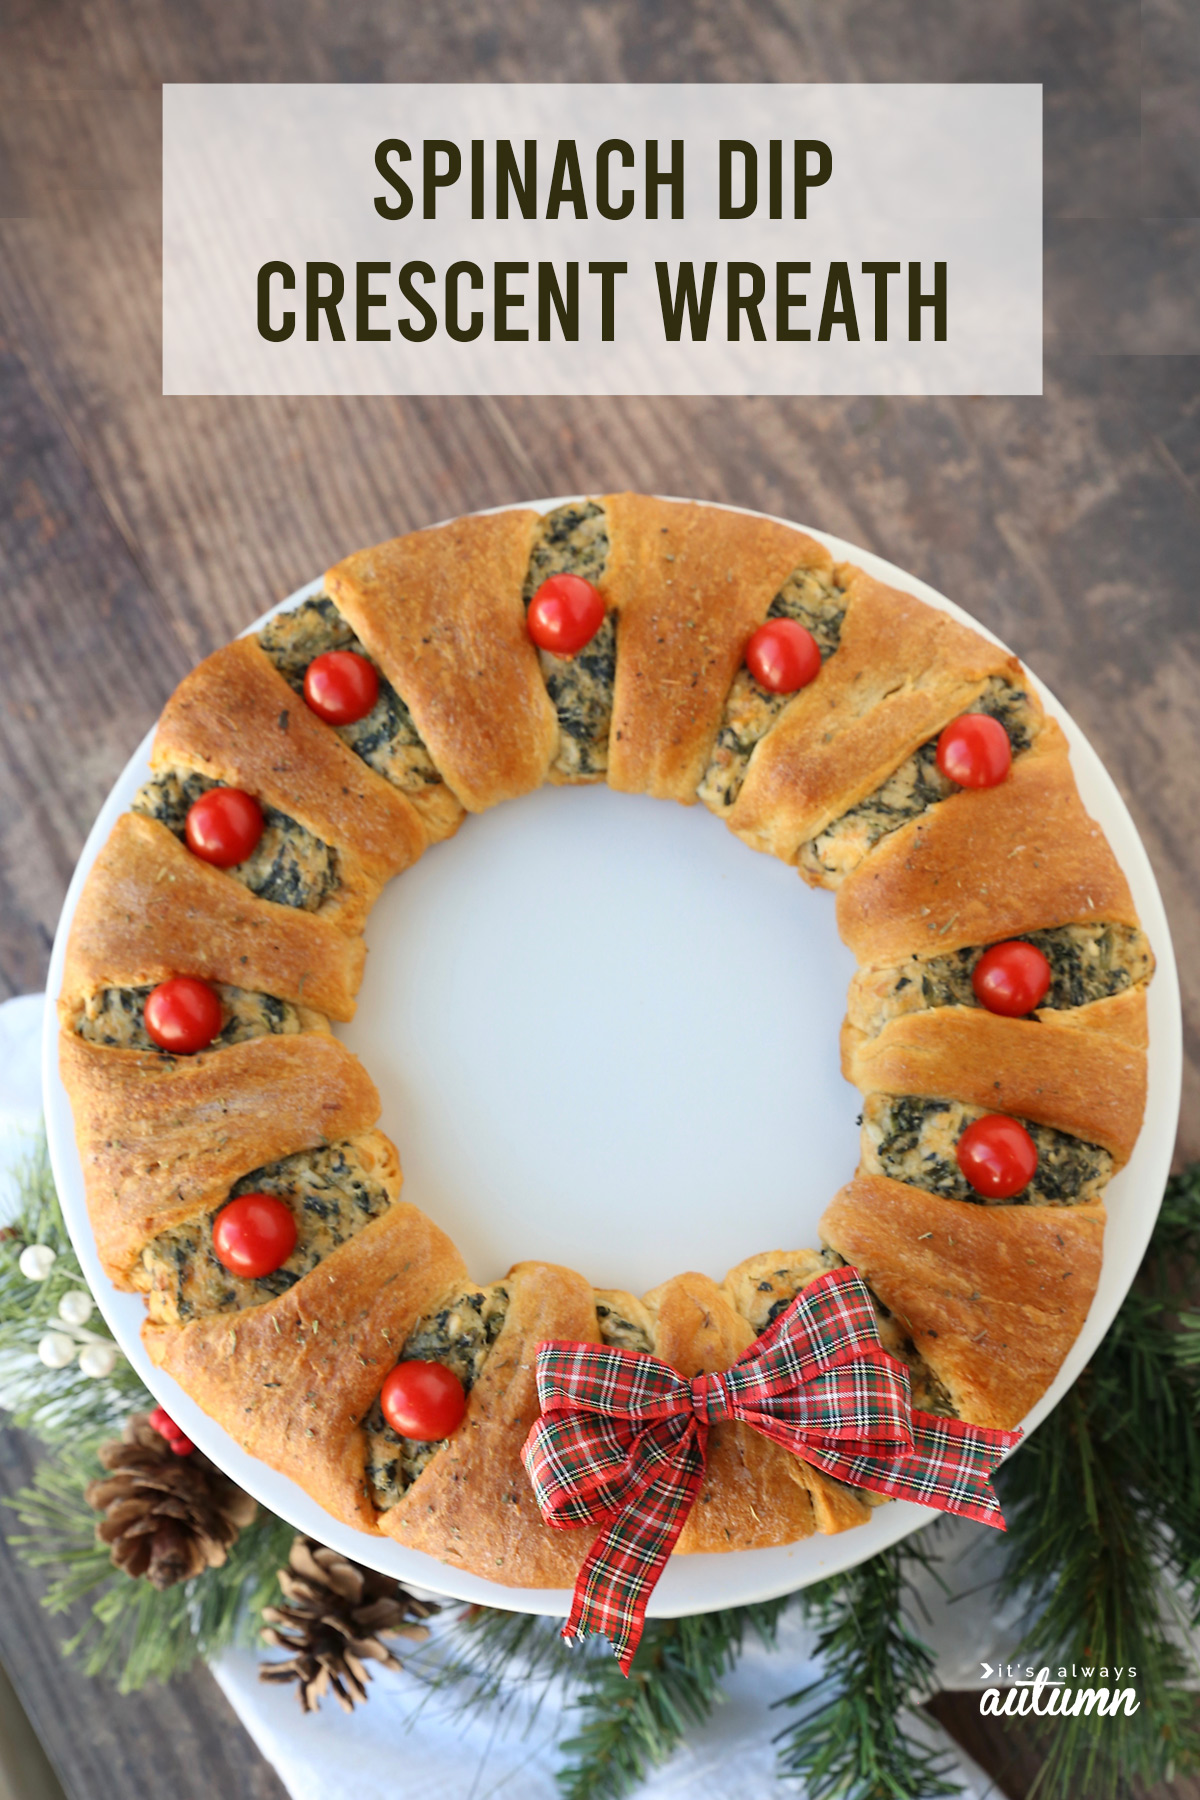 Spinach dip crescent wreath is a gorgeous holiday appetizer - perfect for Christmas parties!